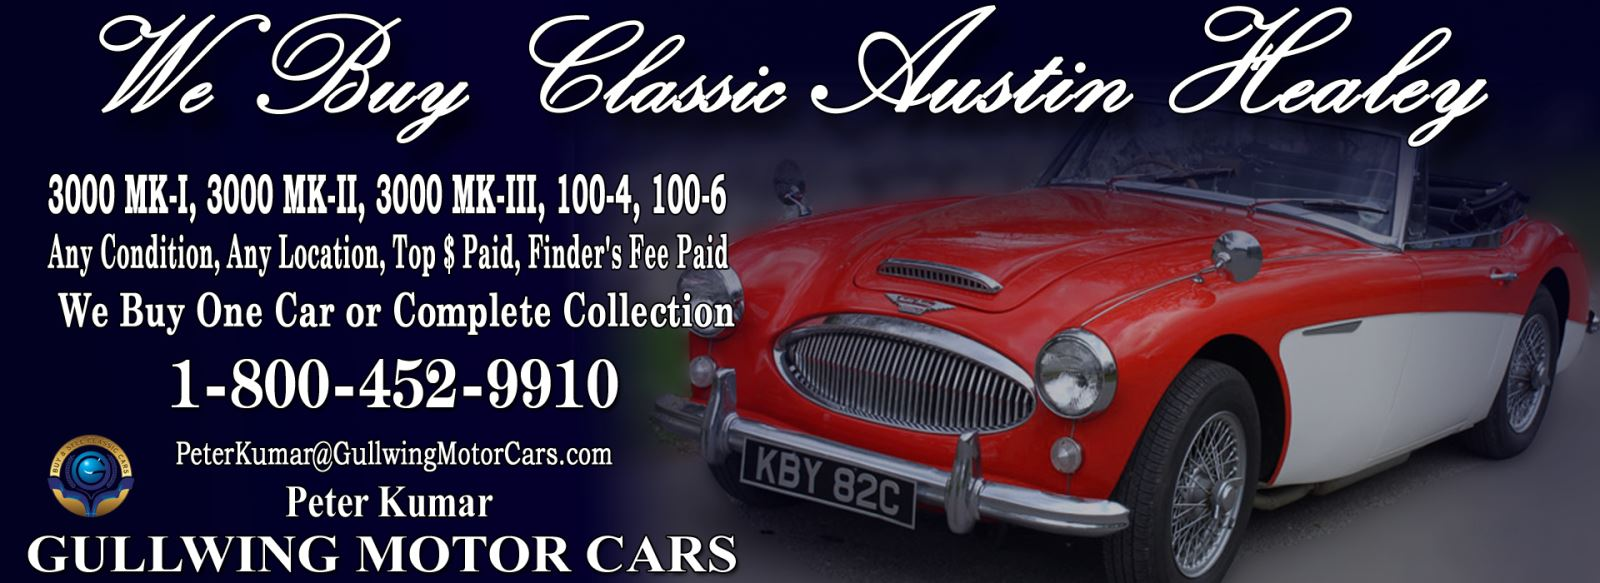 Classic Austin Healey 3000 Mark II for sale, we buy vintage Austin Healey MKII. Call Peter Kumar. Gullwing Motor